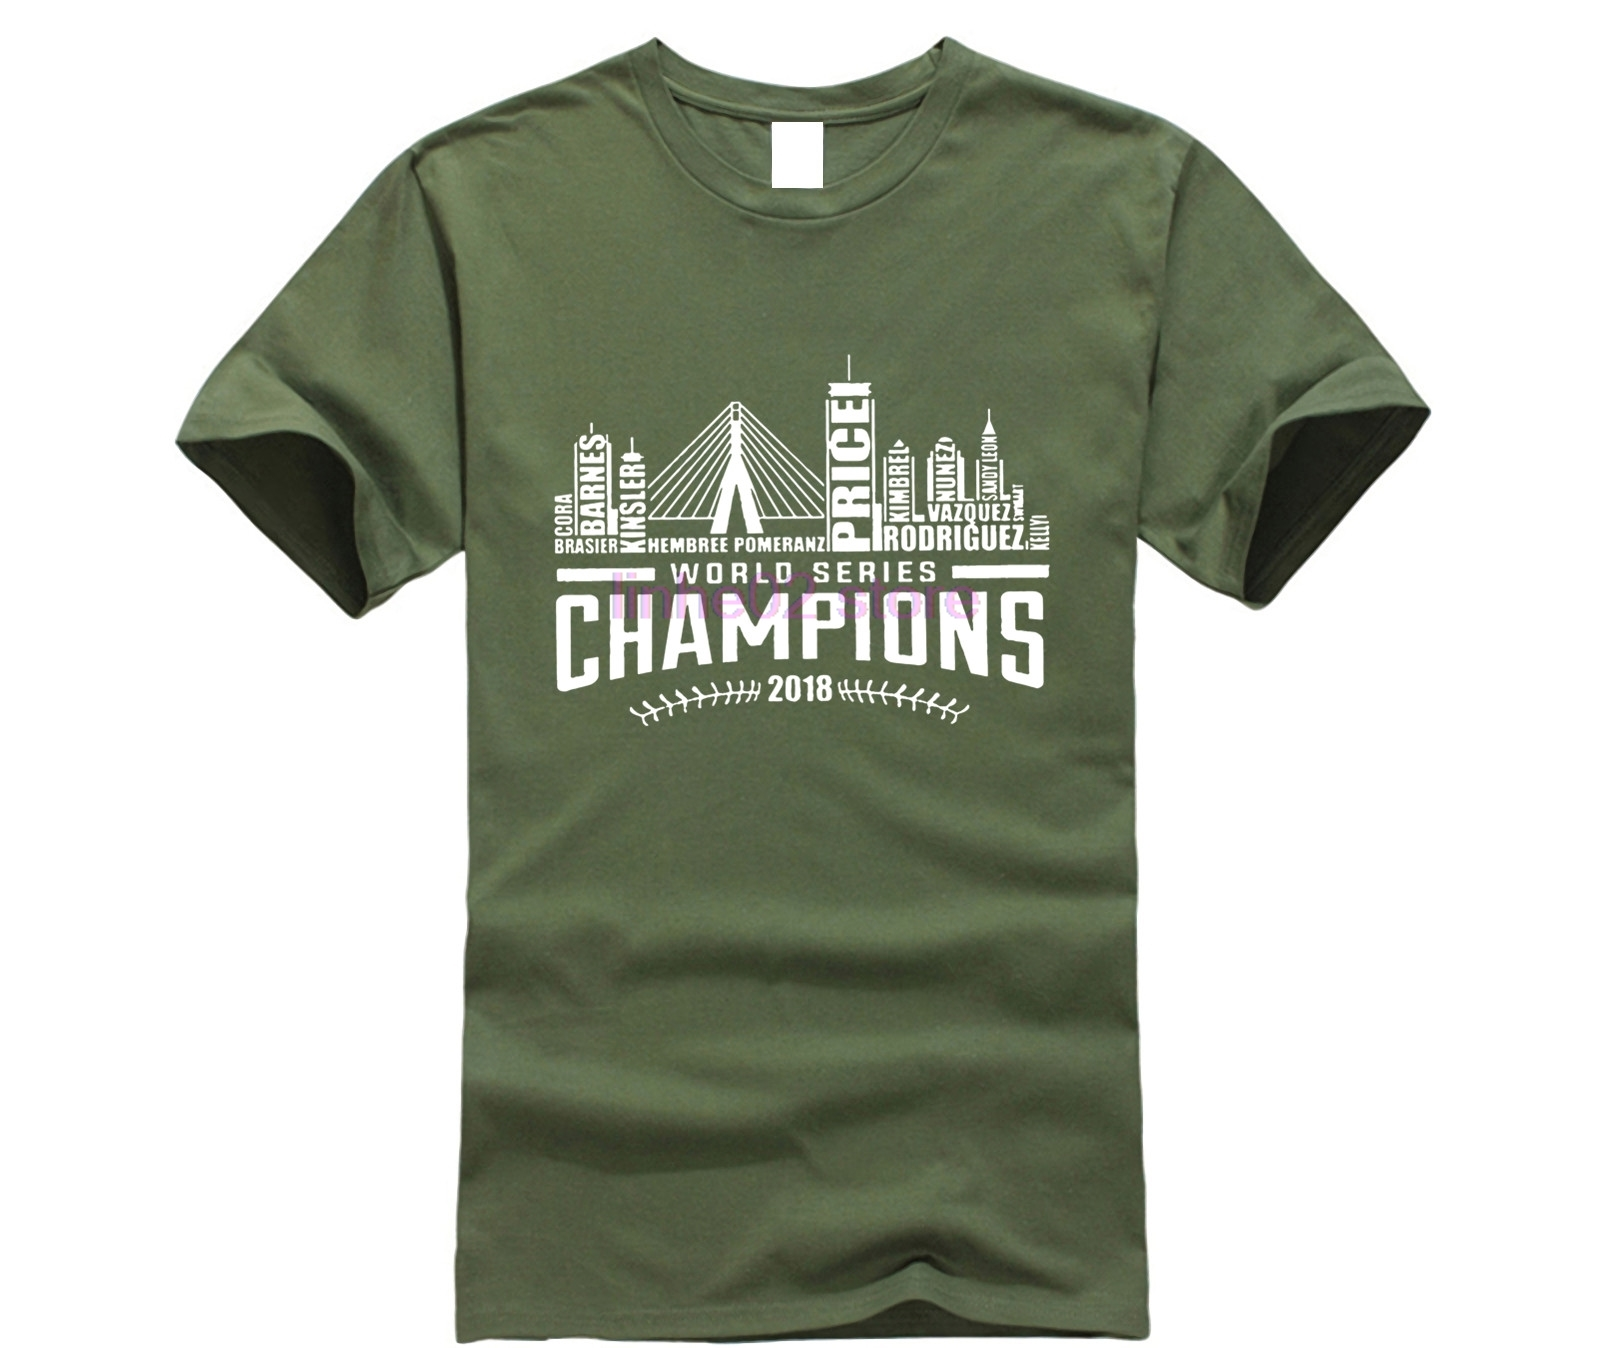 competitive price 4ca86 0592f US $7.99 20% OFF|Boston Red Sox 2018 World Series Champions Nameplate T  Shirt 2019 Fashion Casual Streetwear-in T-Shirts from Men's Clothing on ...